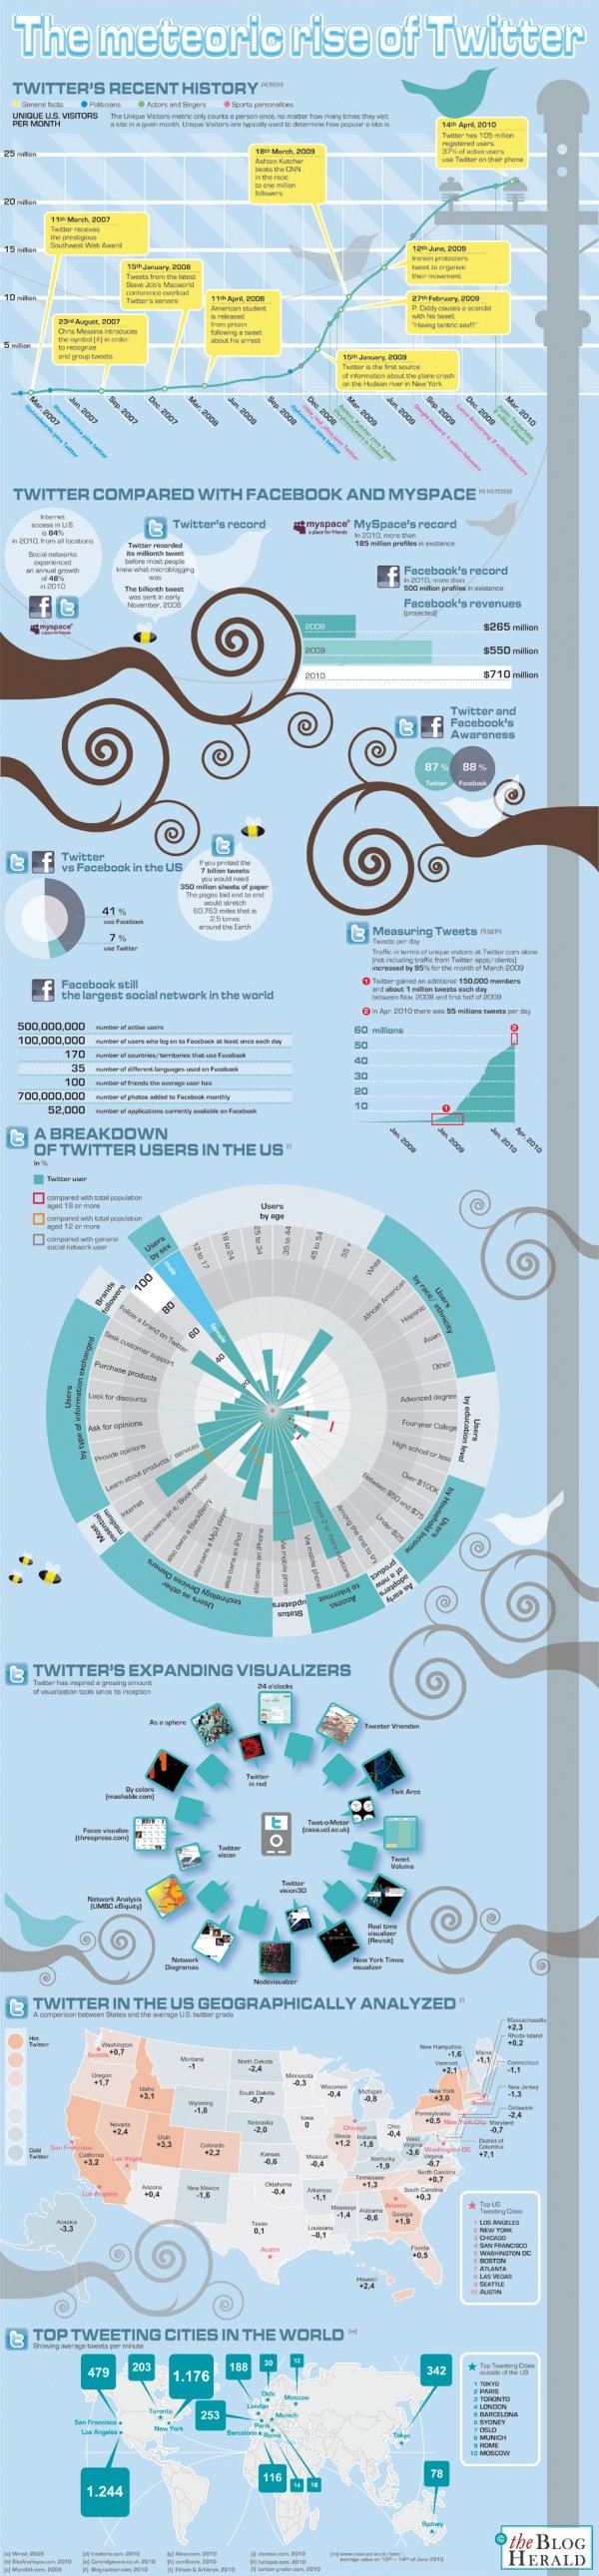 Twitter statistics compared to Facebook infographic